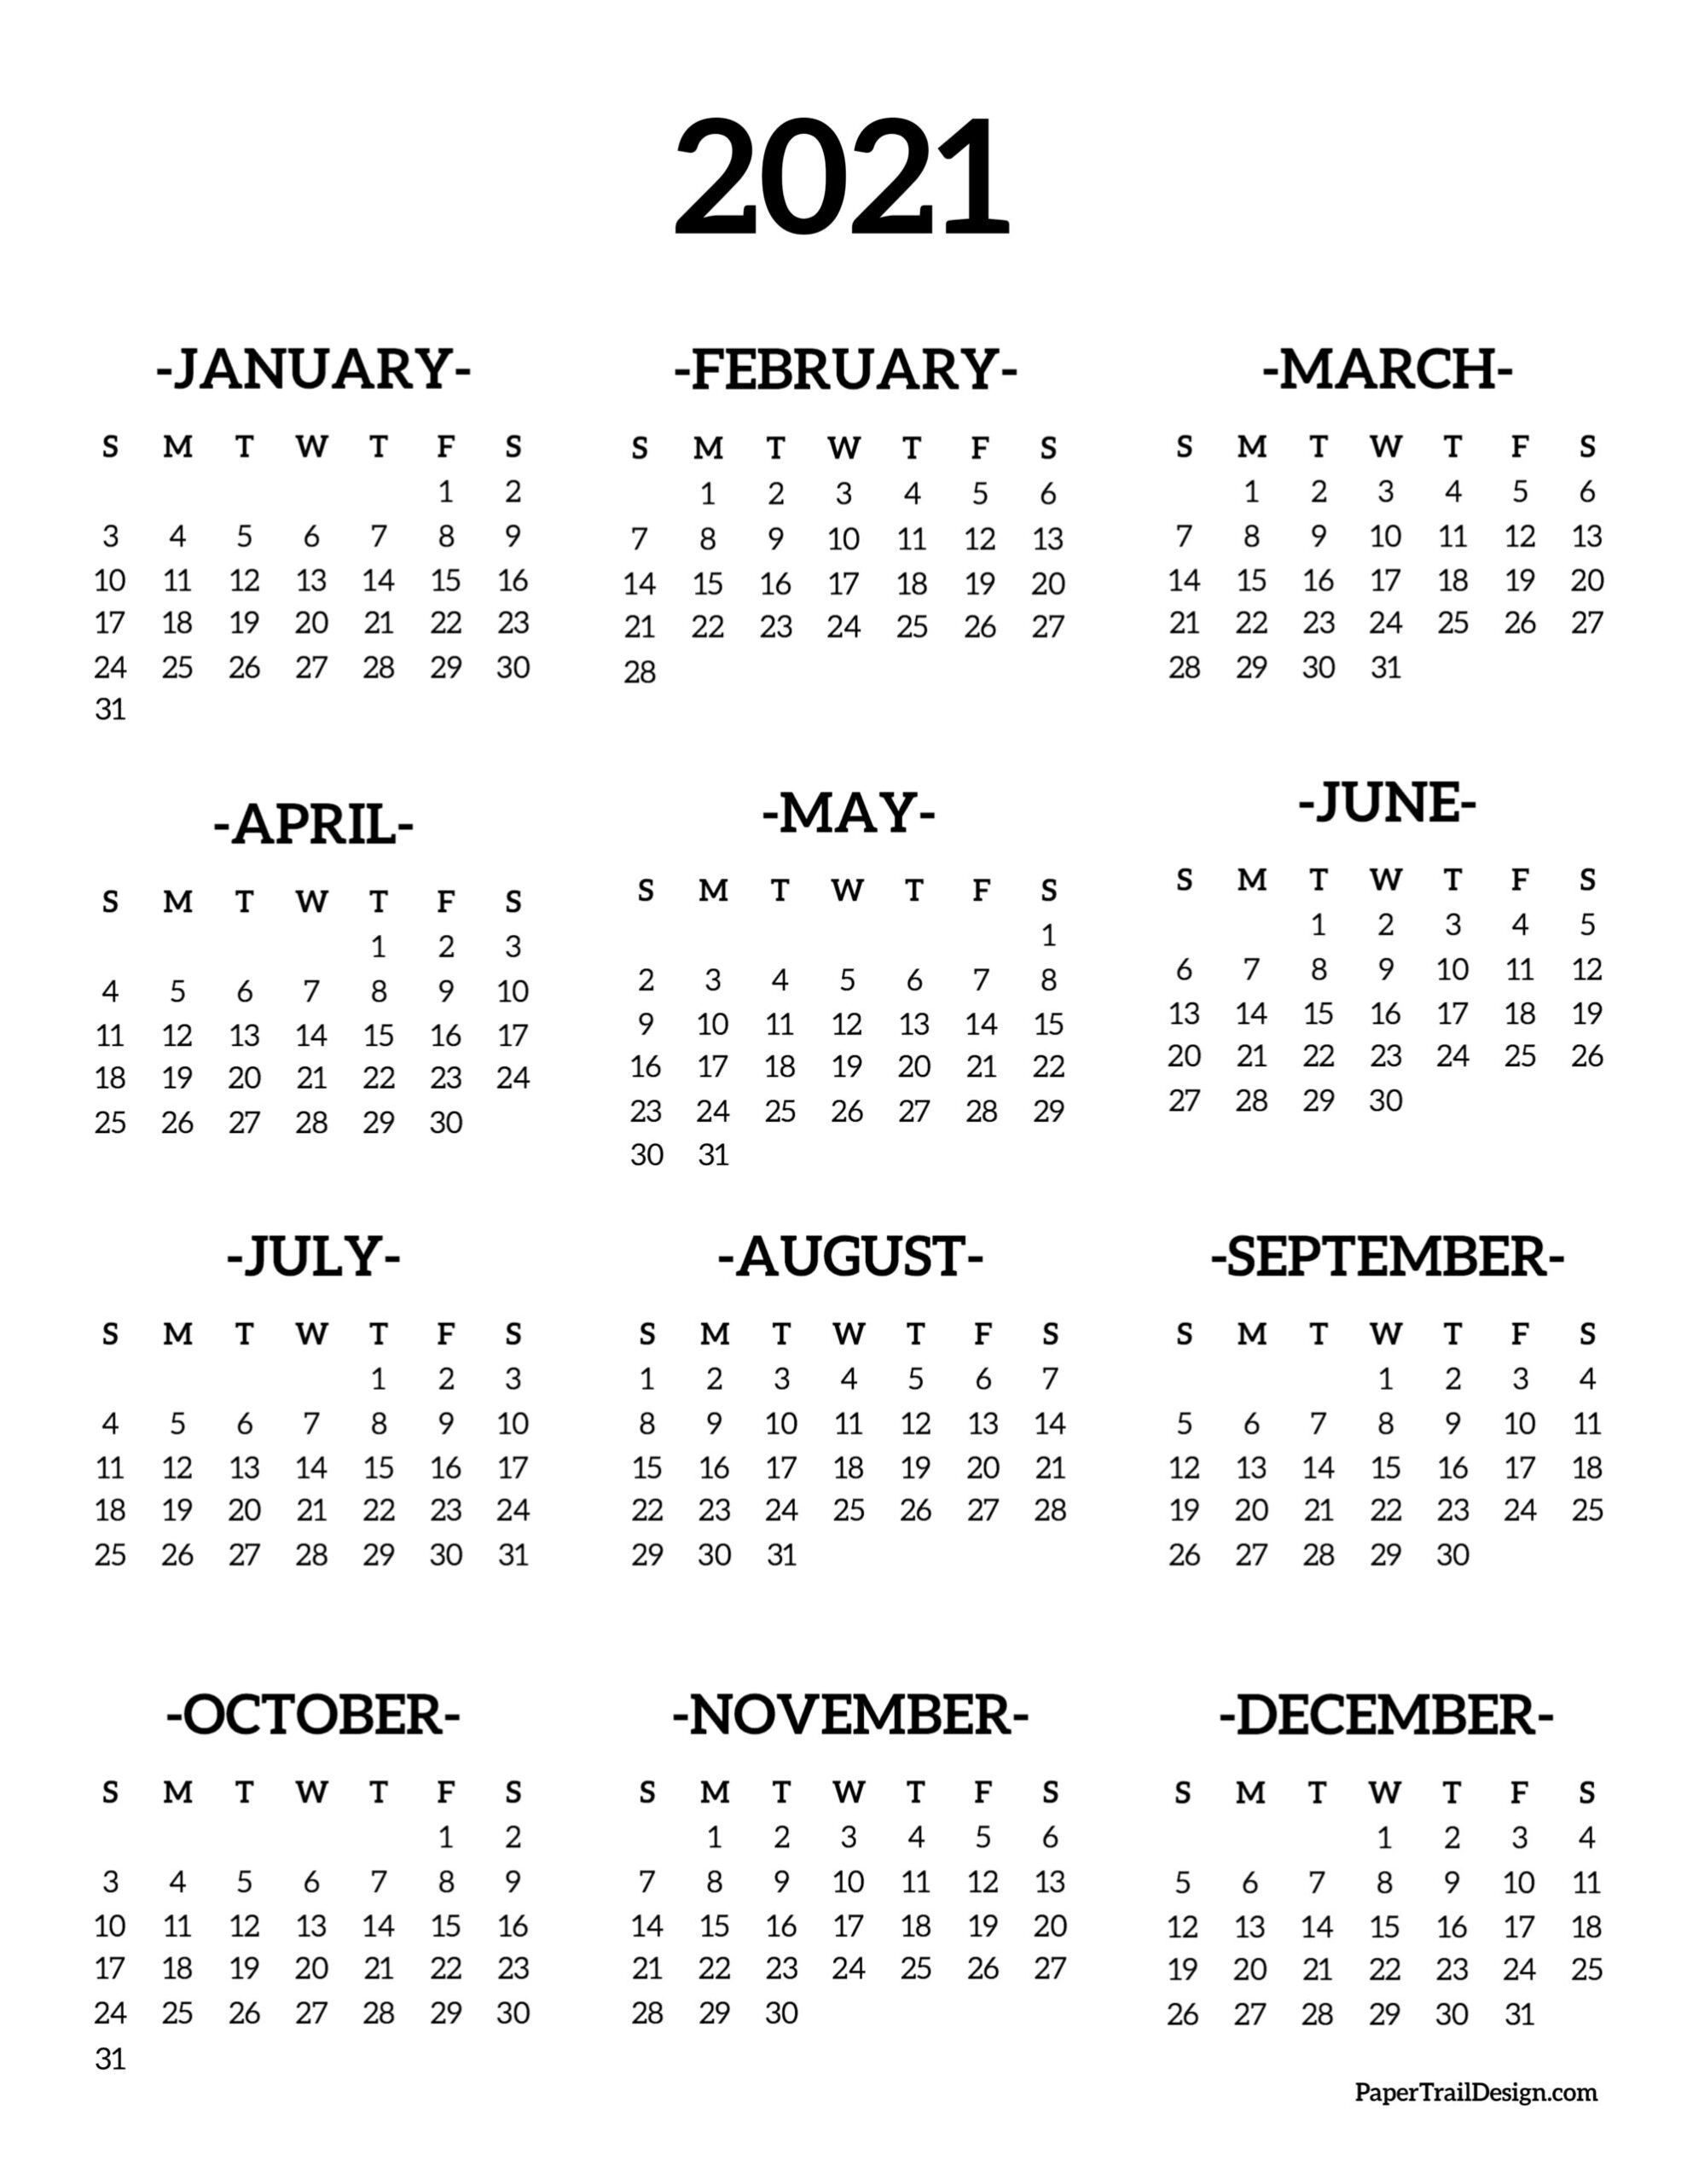 Calendar 2021 Printable One Page | Paper Trail Design regarding 2021 Printable Calendar With Boxes Yearly